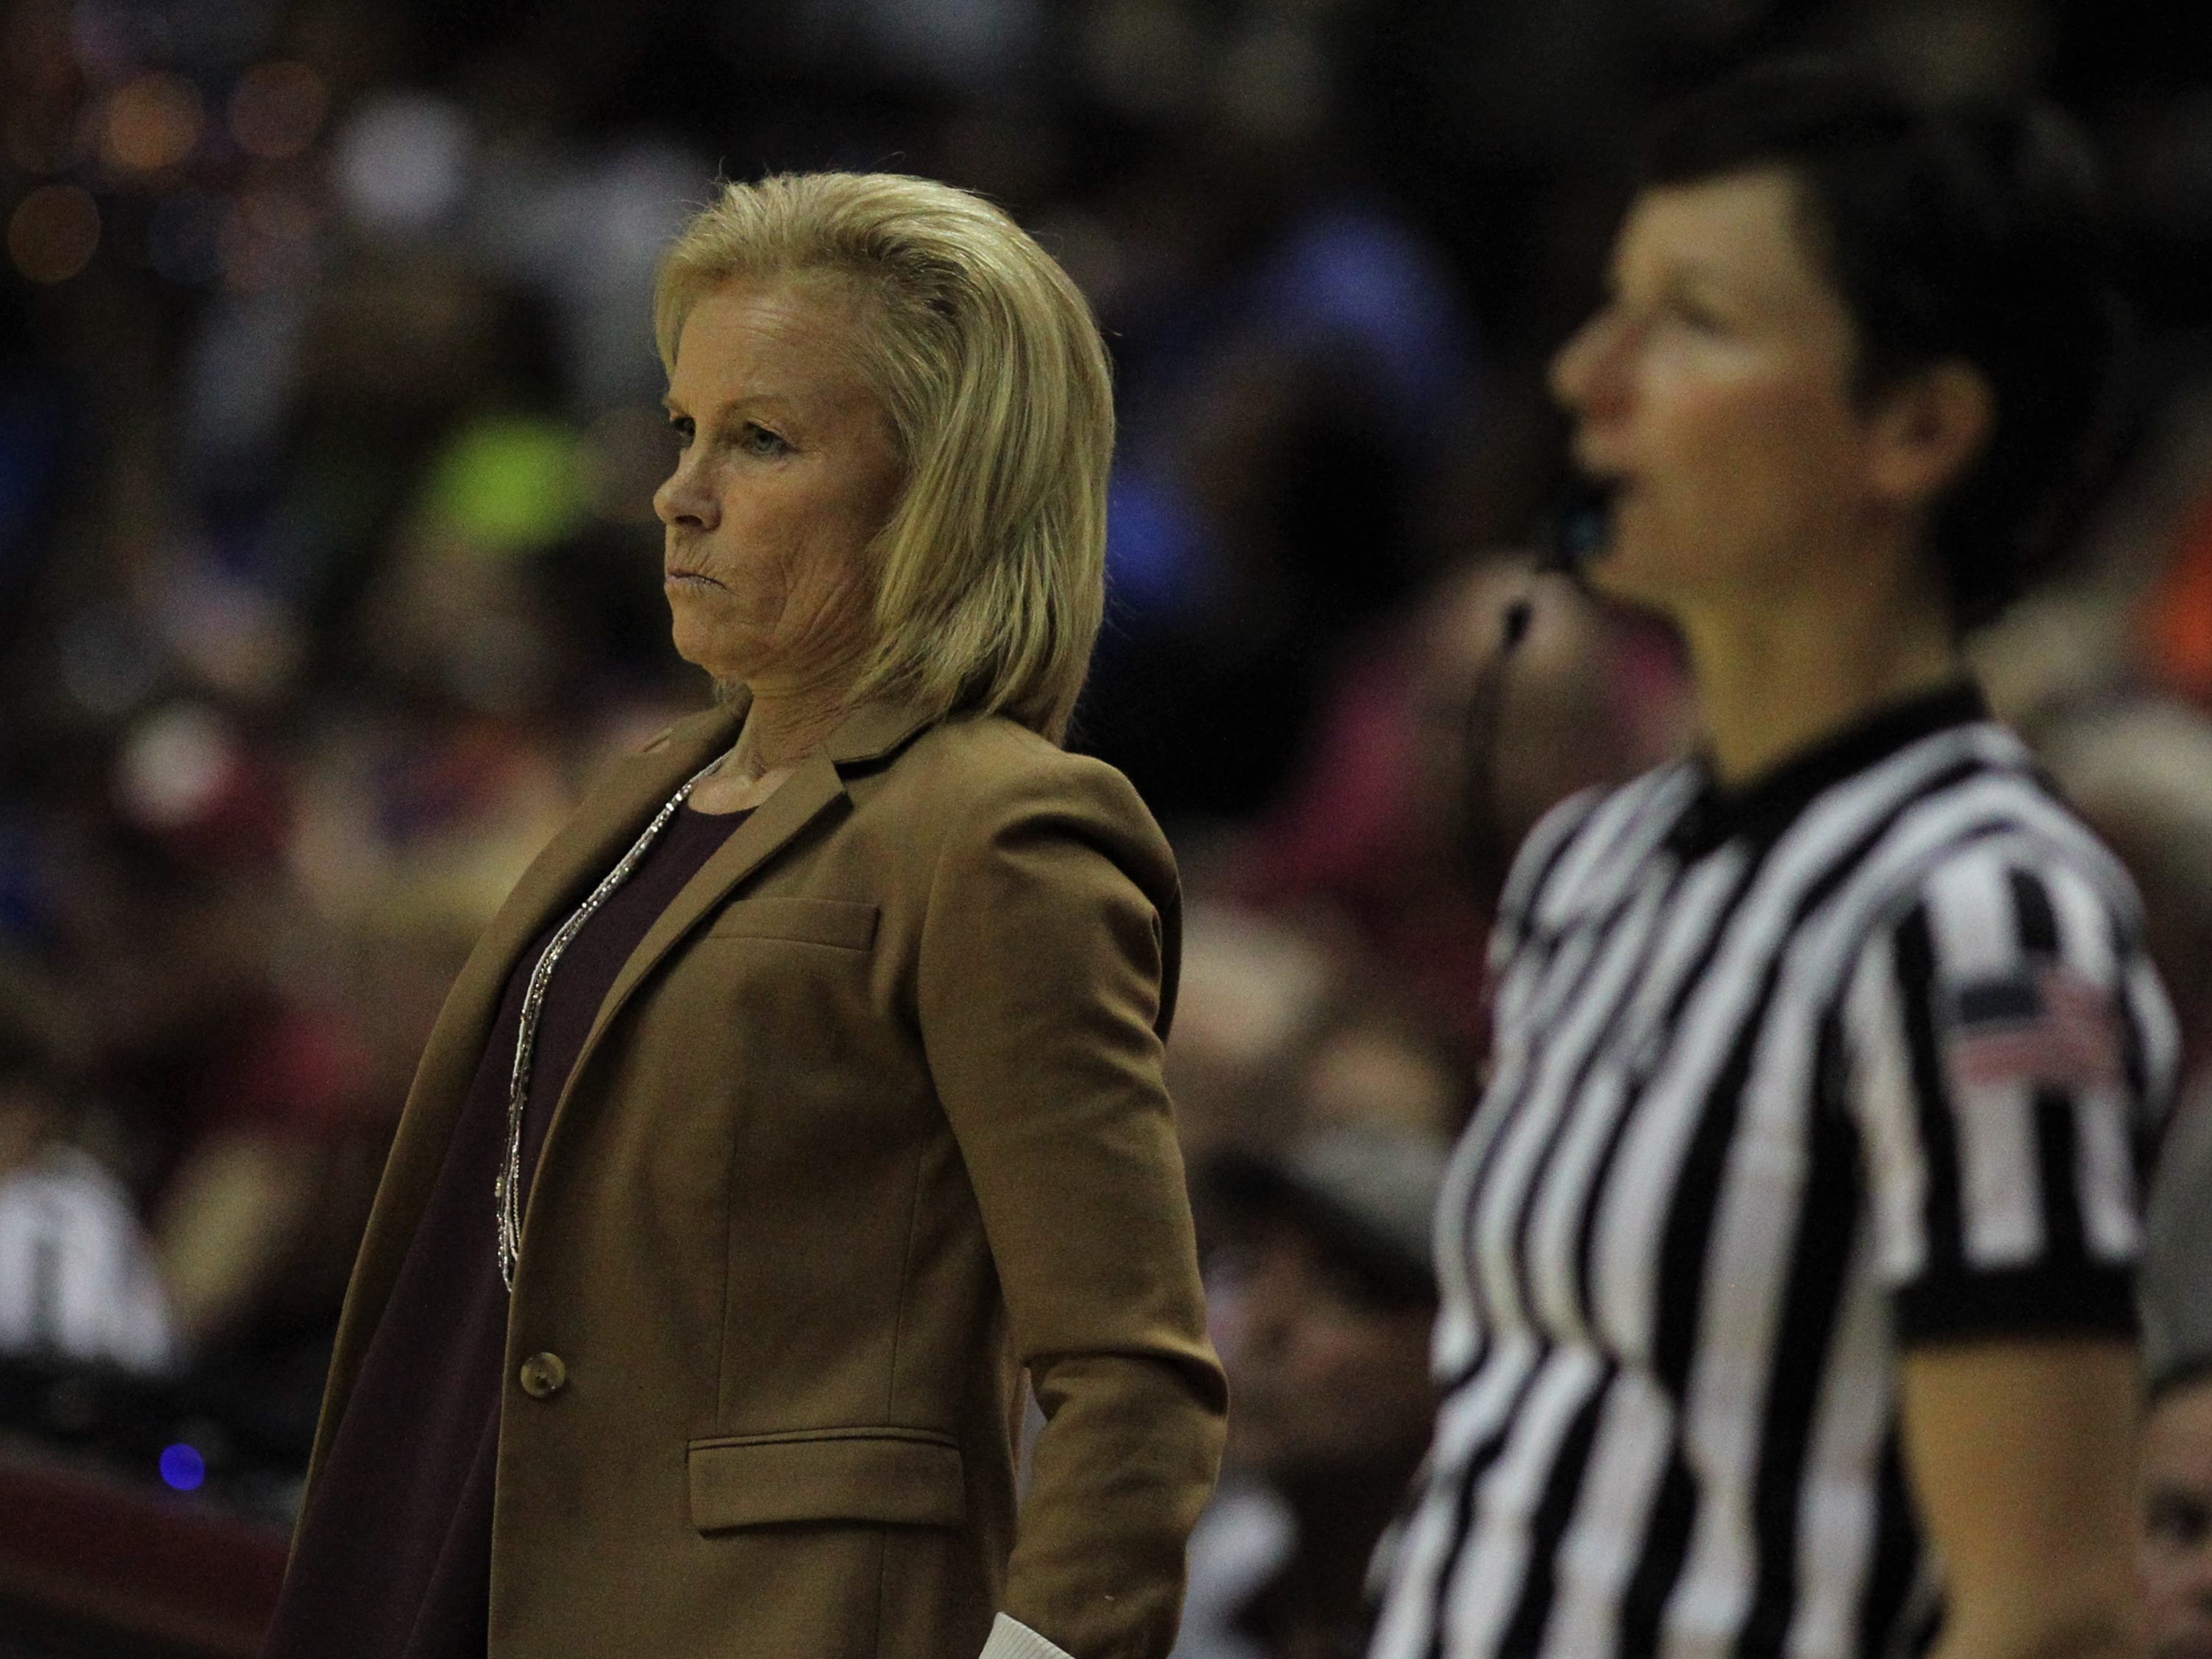 Florida State women's basketball coach Sue Semrau watches her team during the second half of the Seminoles' game against Florida at the Tucker Civic Center on Nov. 11, 2018.